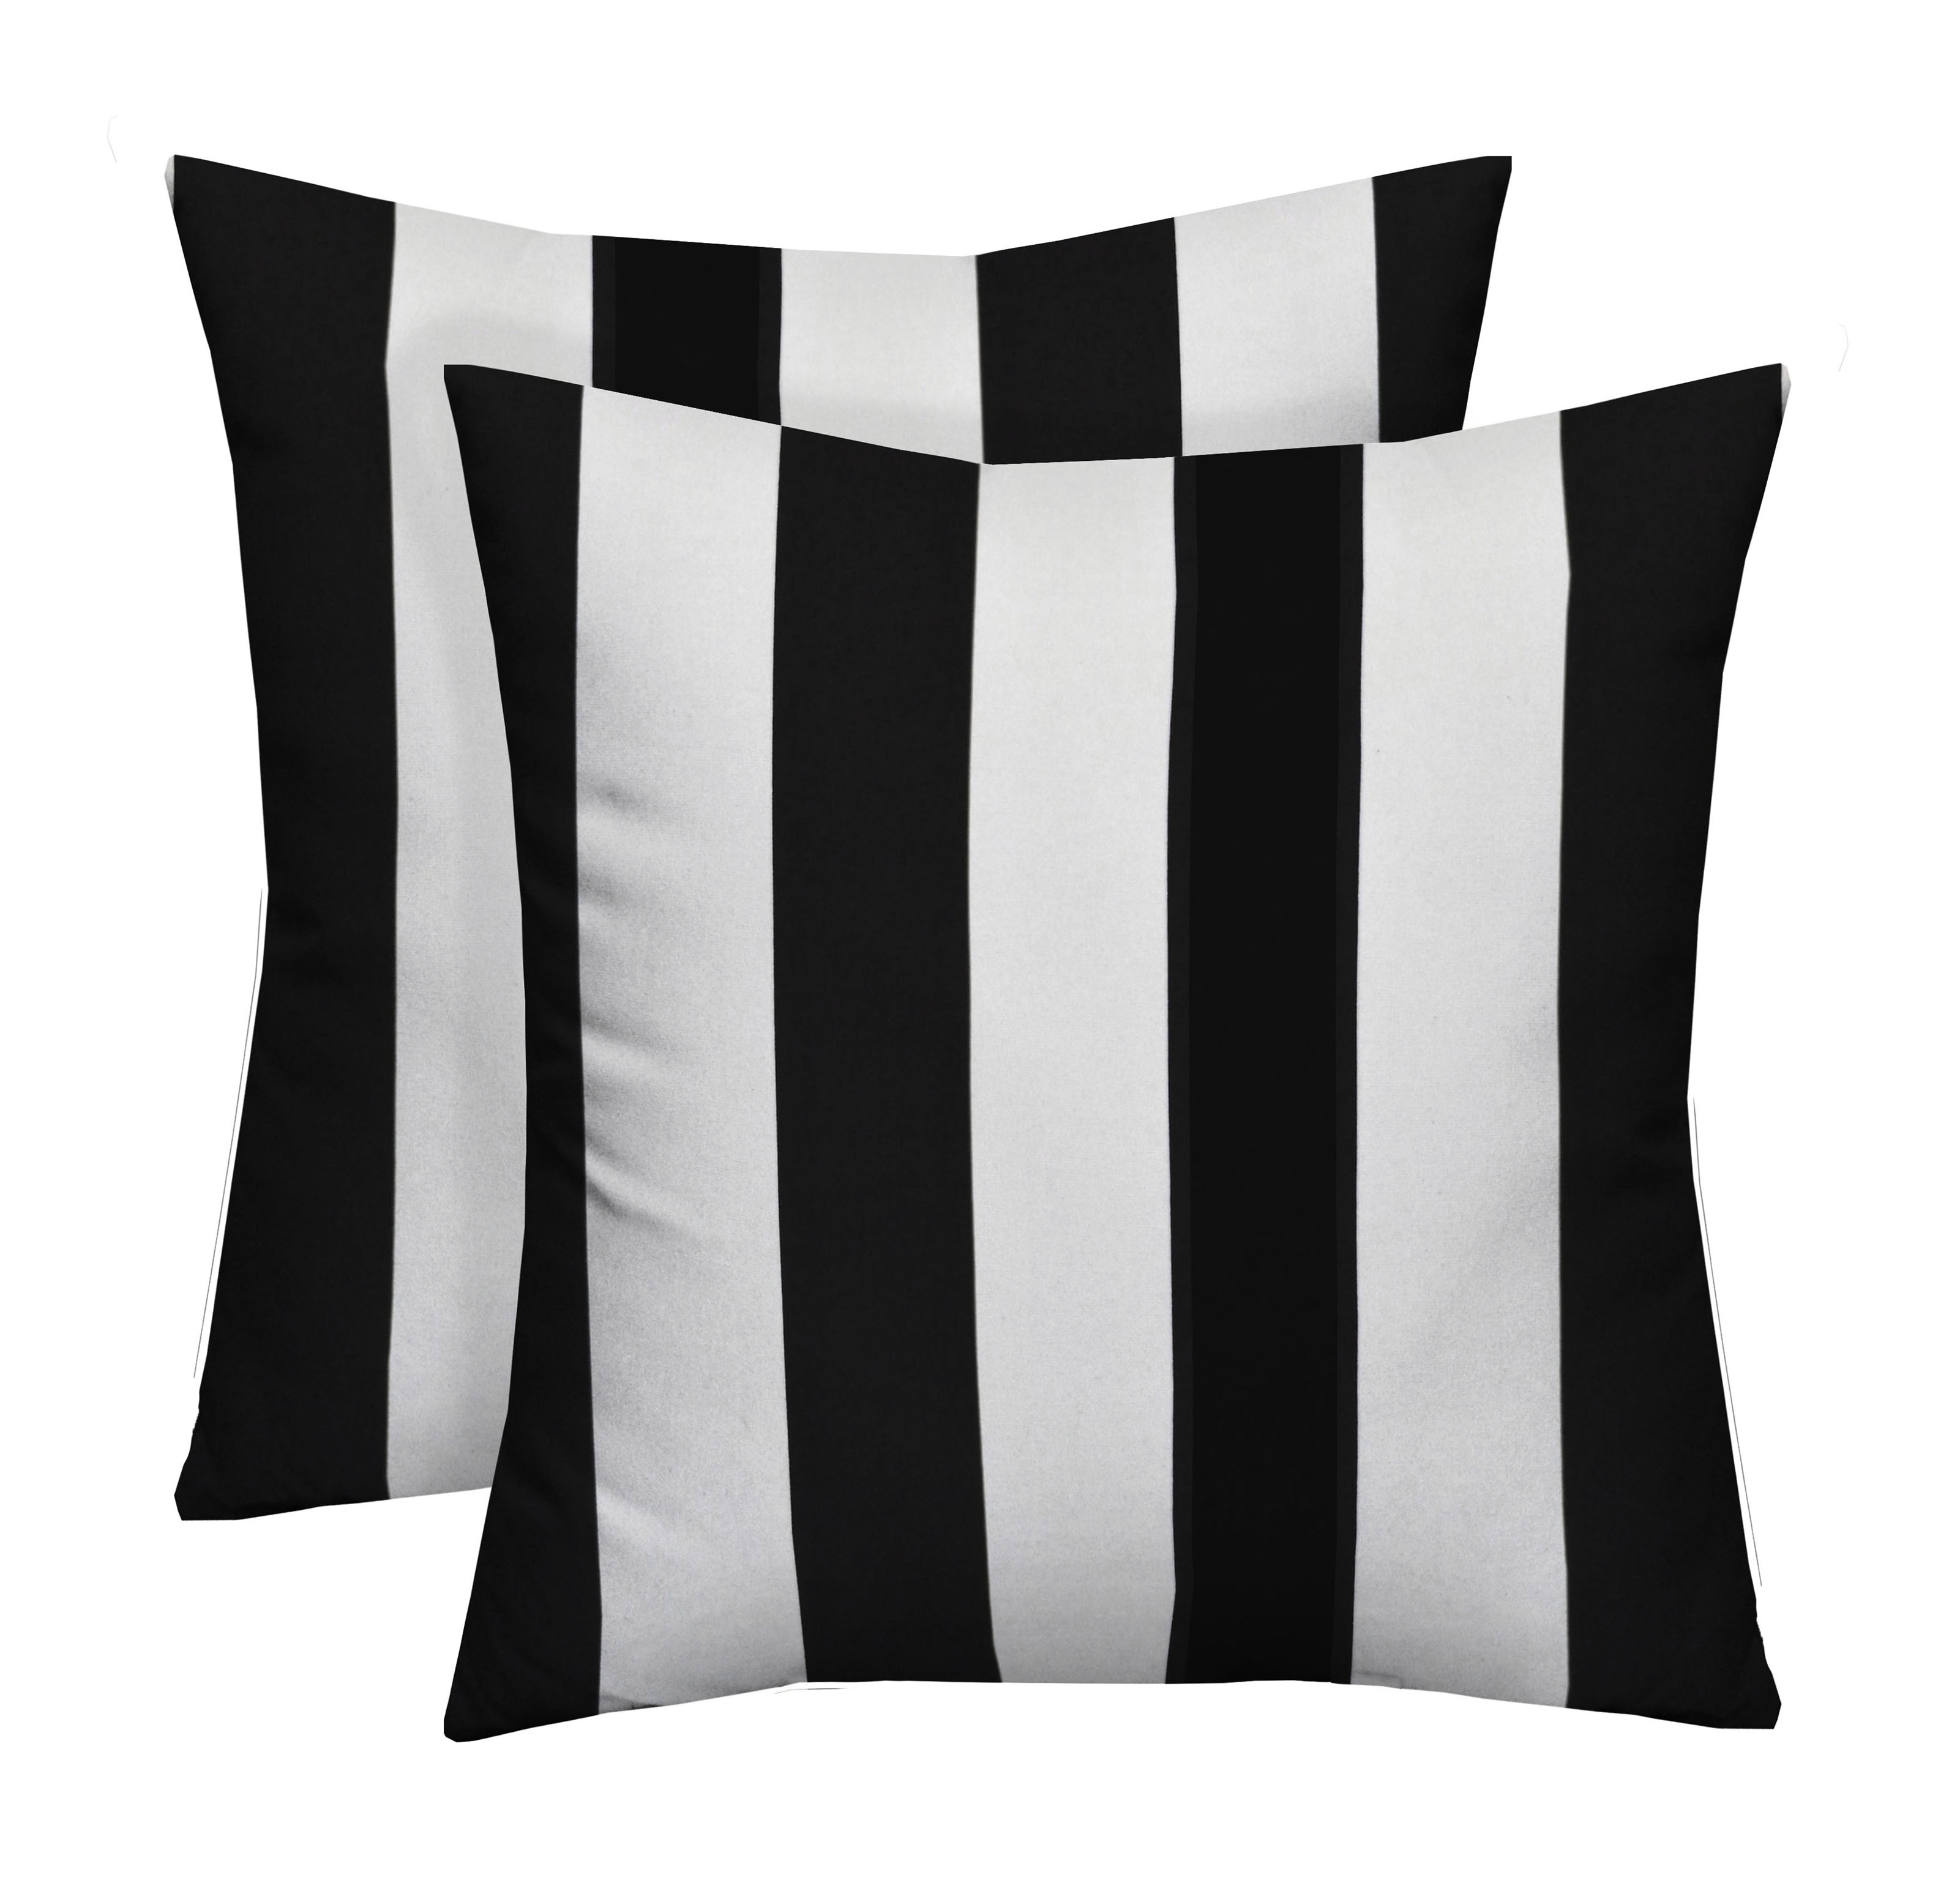 Rsh Décor Indoor Outdoor Set Of 2 Square Throw Pillows Weather Resistant 17 X 17 Black White Stripe Walmart Com Walmart Com